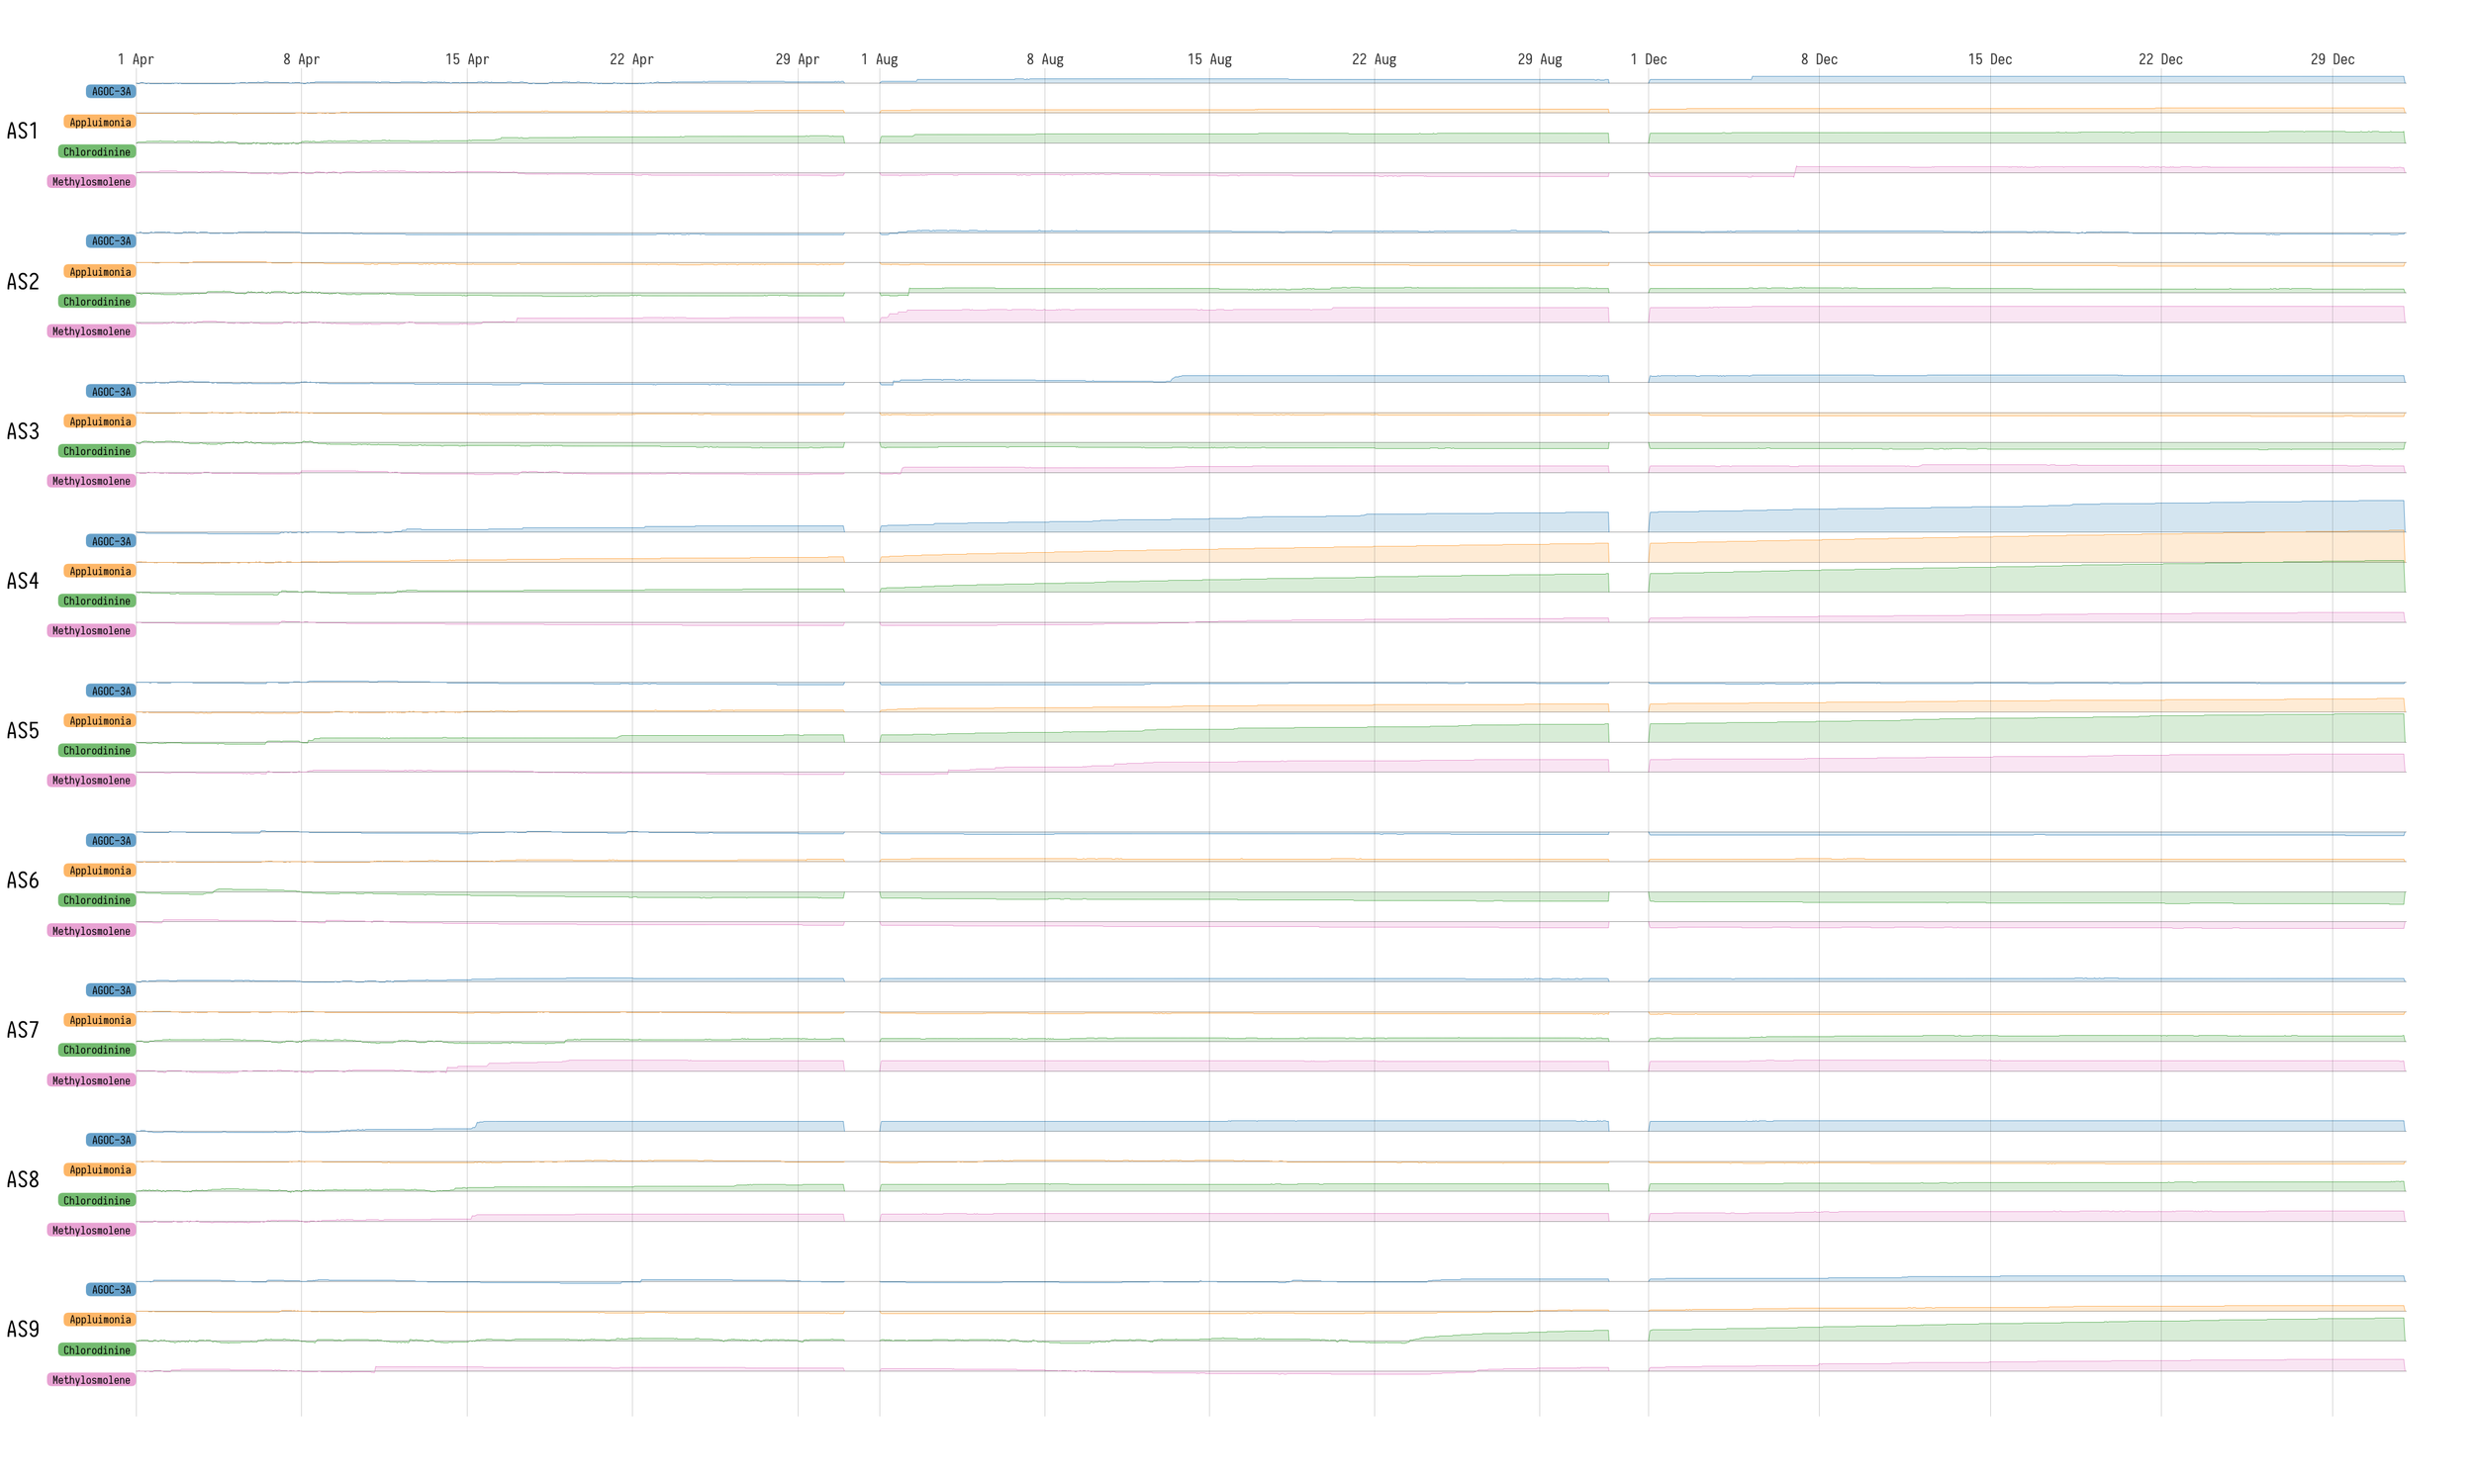 Figure 10  -CUSUM charts for all sensors/chemicals over time.